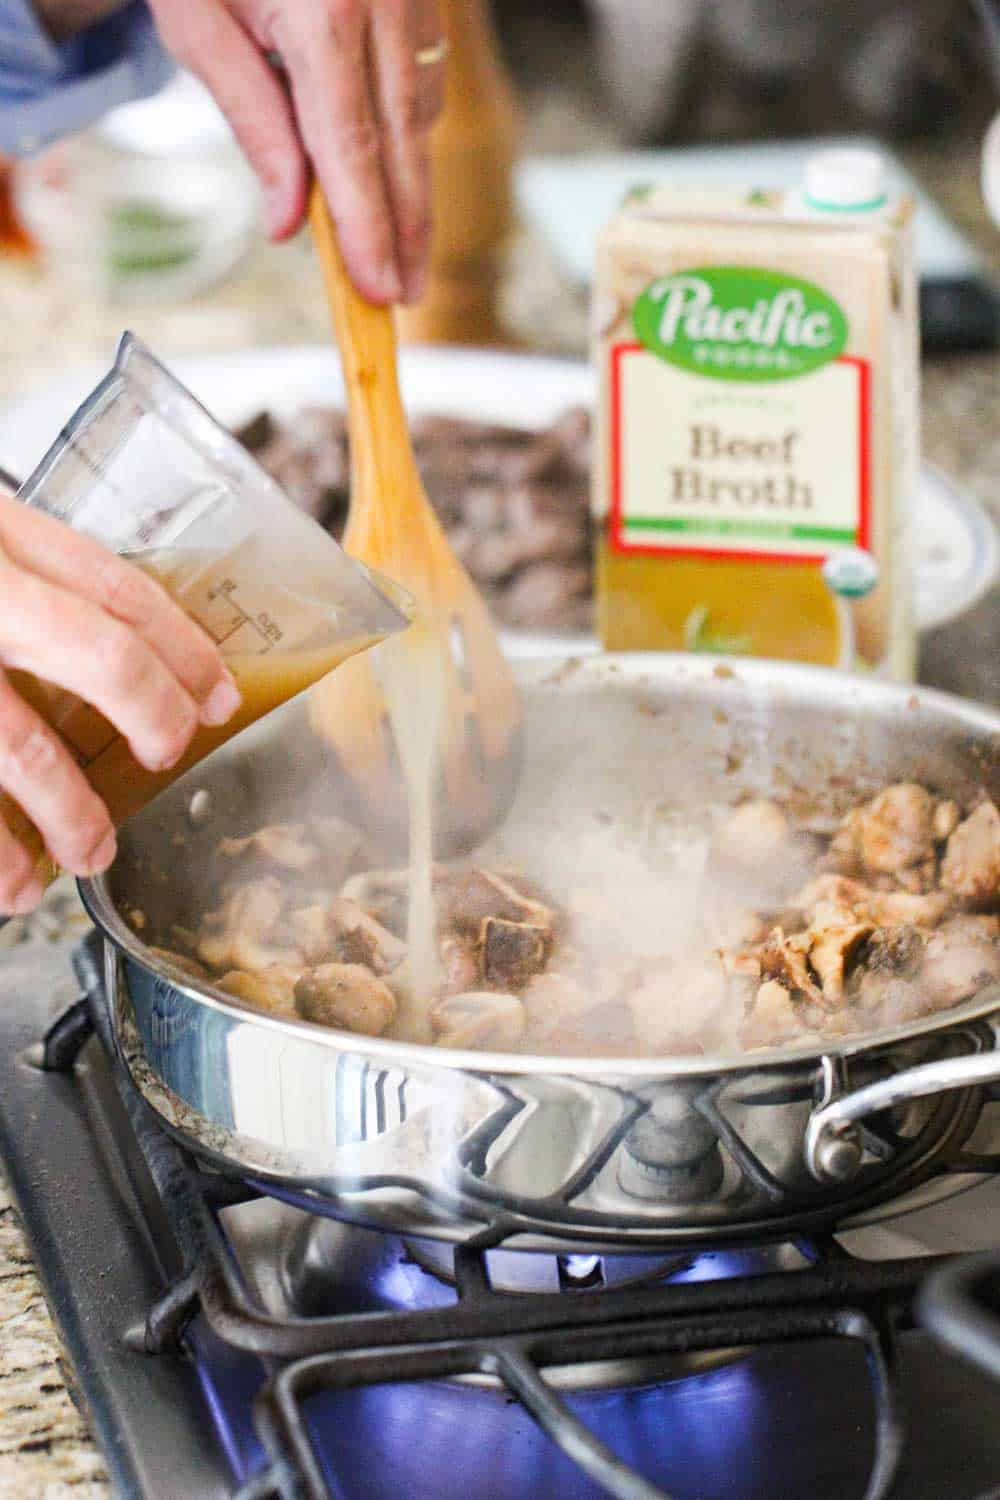 Beef broth being poured into a skillet of gourmet beef stroganoff.